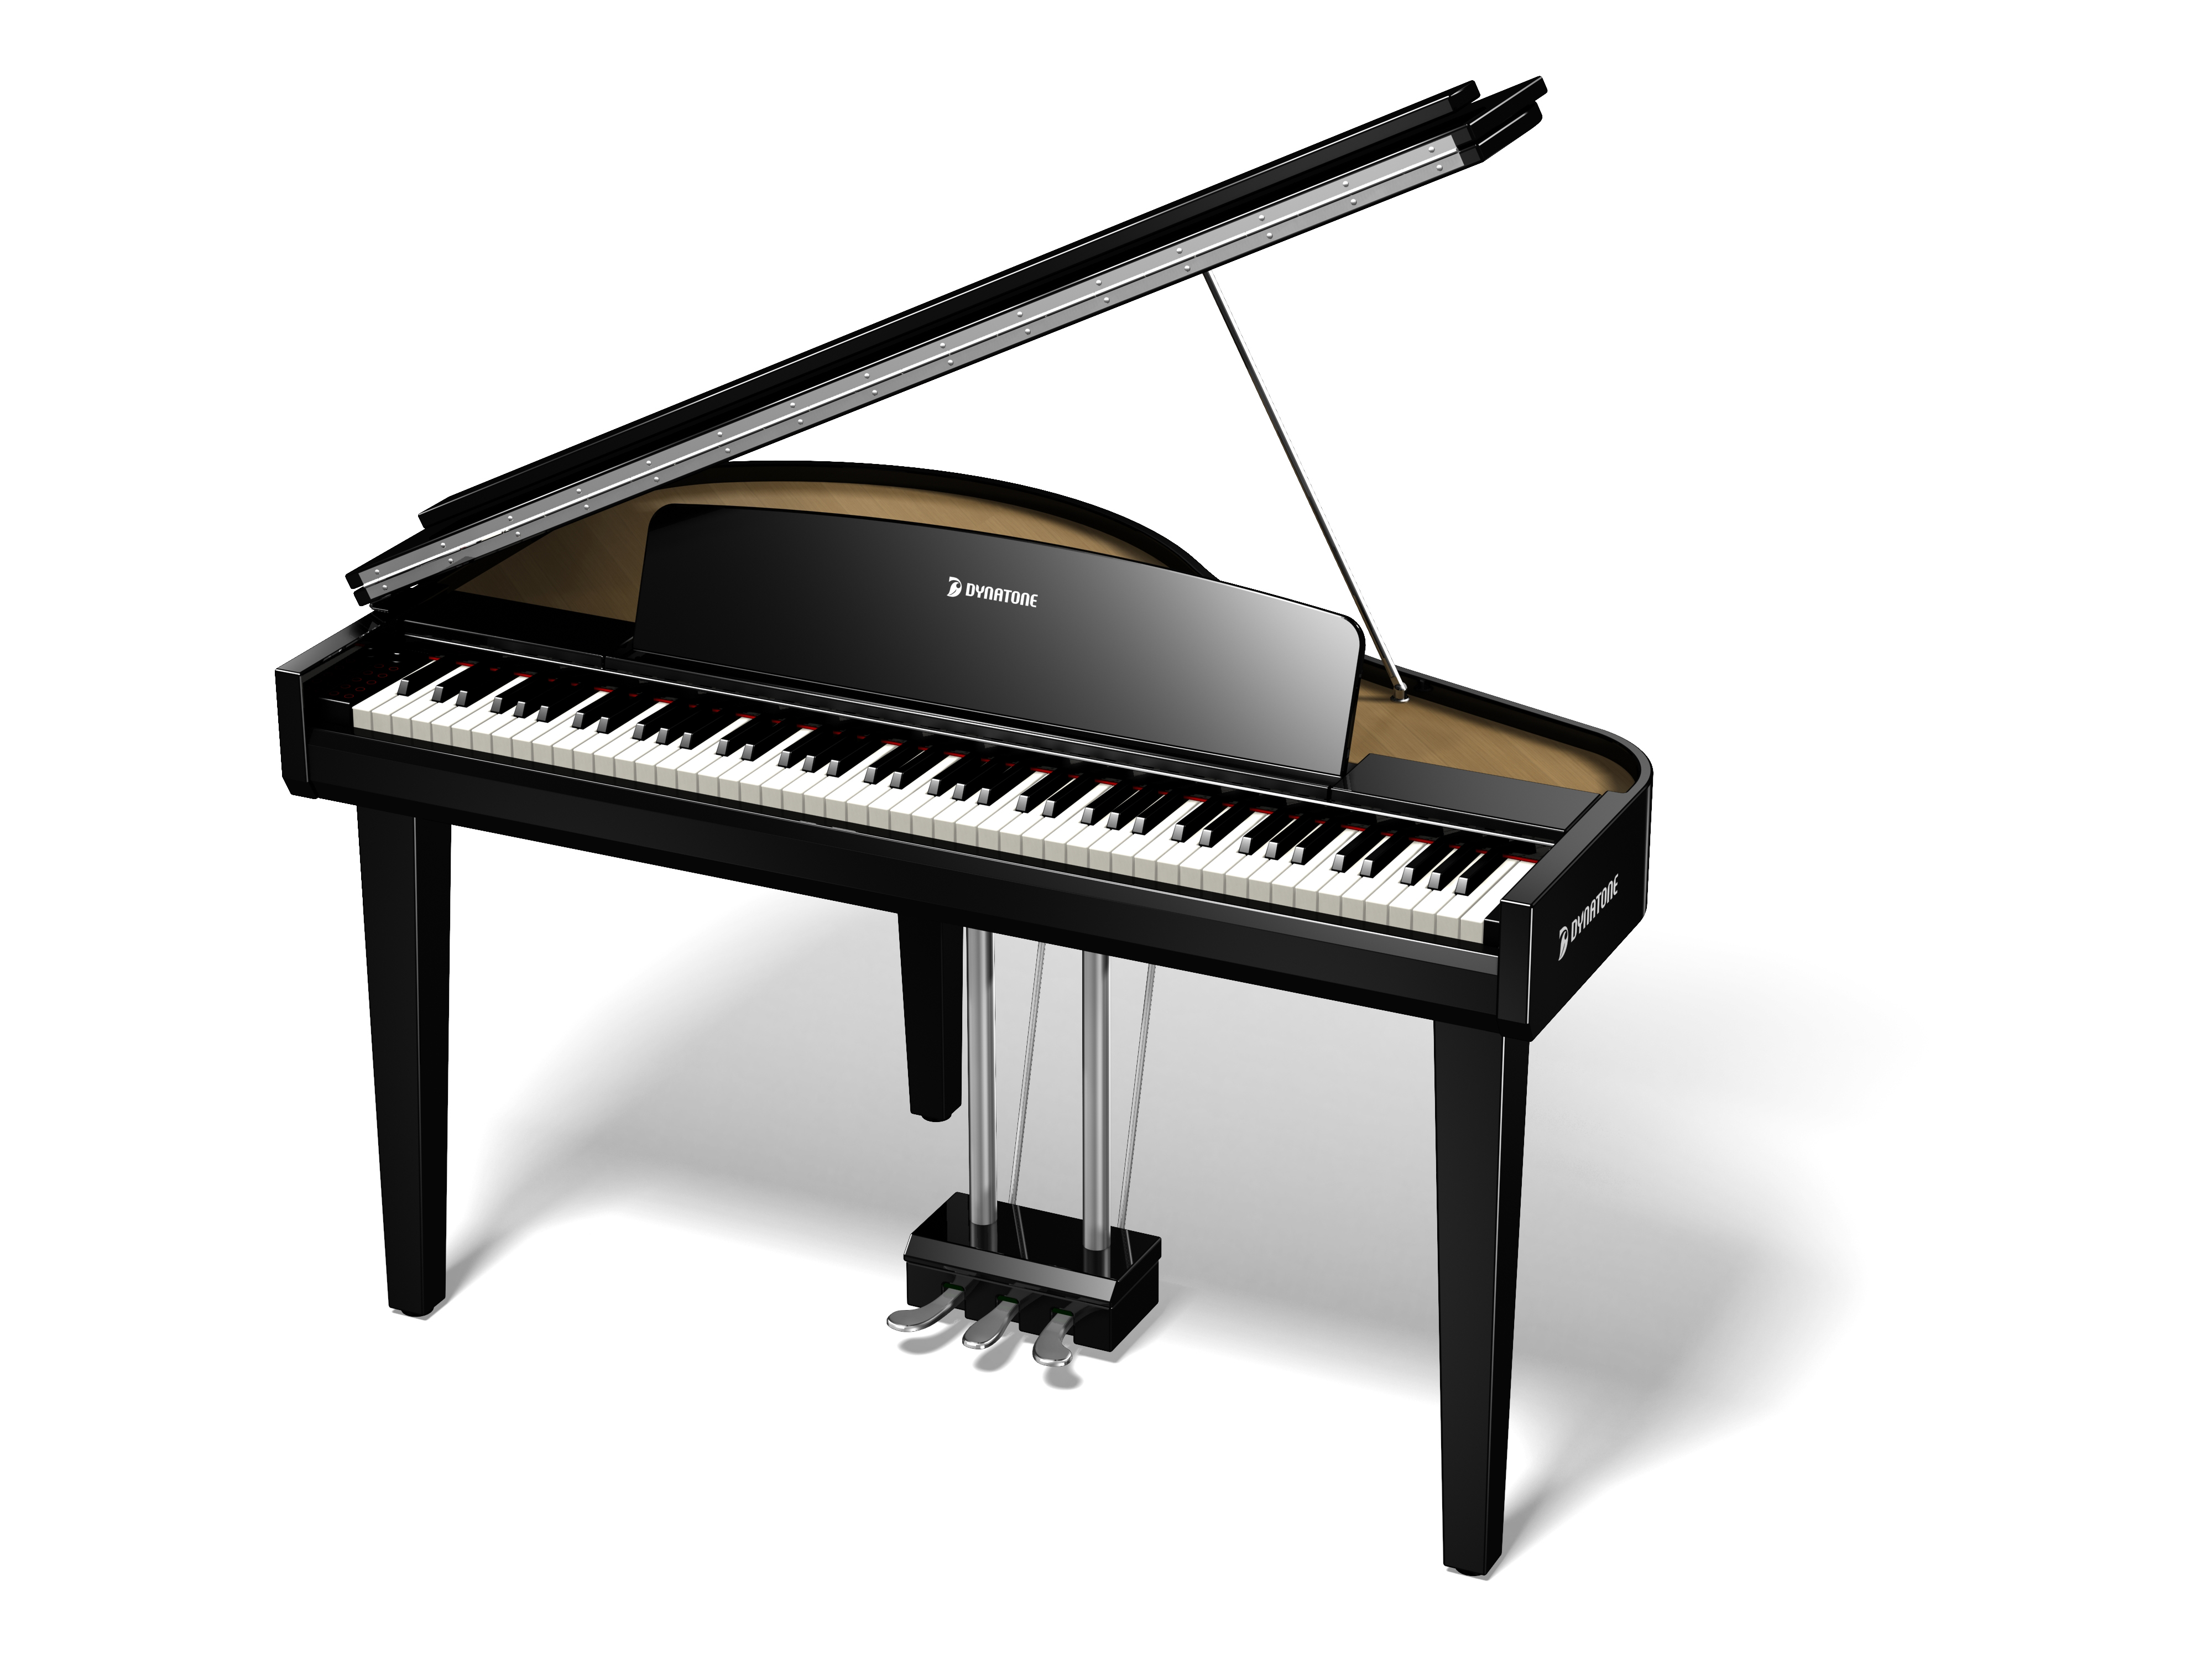 Grand pianos for sale new and second hand Size of baby grand piano